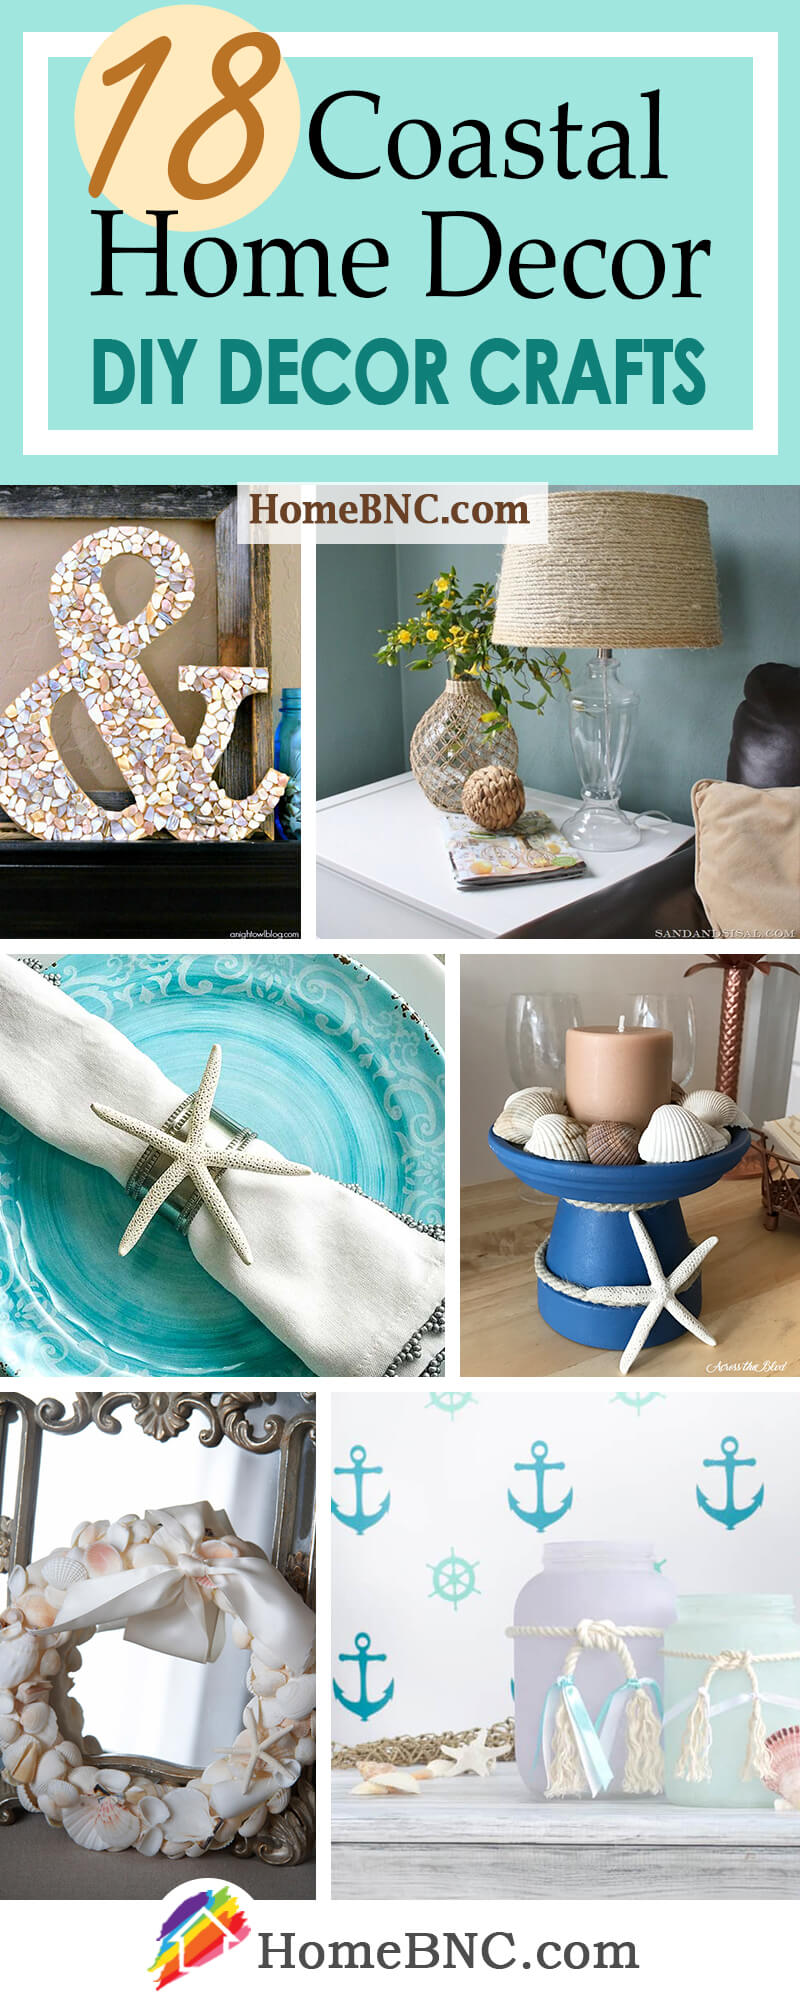 18 Best Diy Coastal Home Decor Ideas To Bring The Beach Indoors In 2021